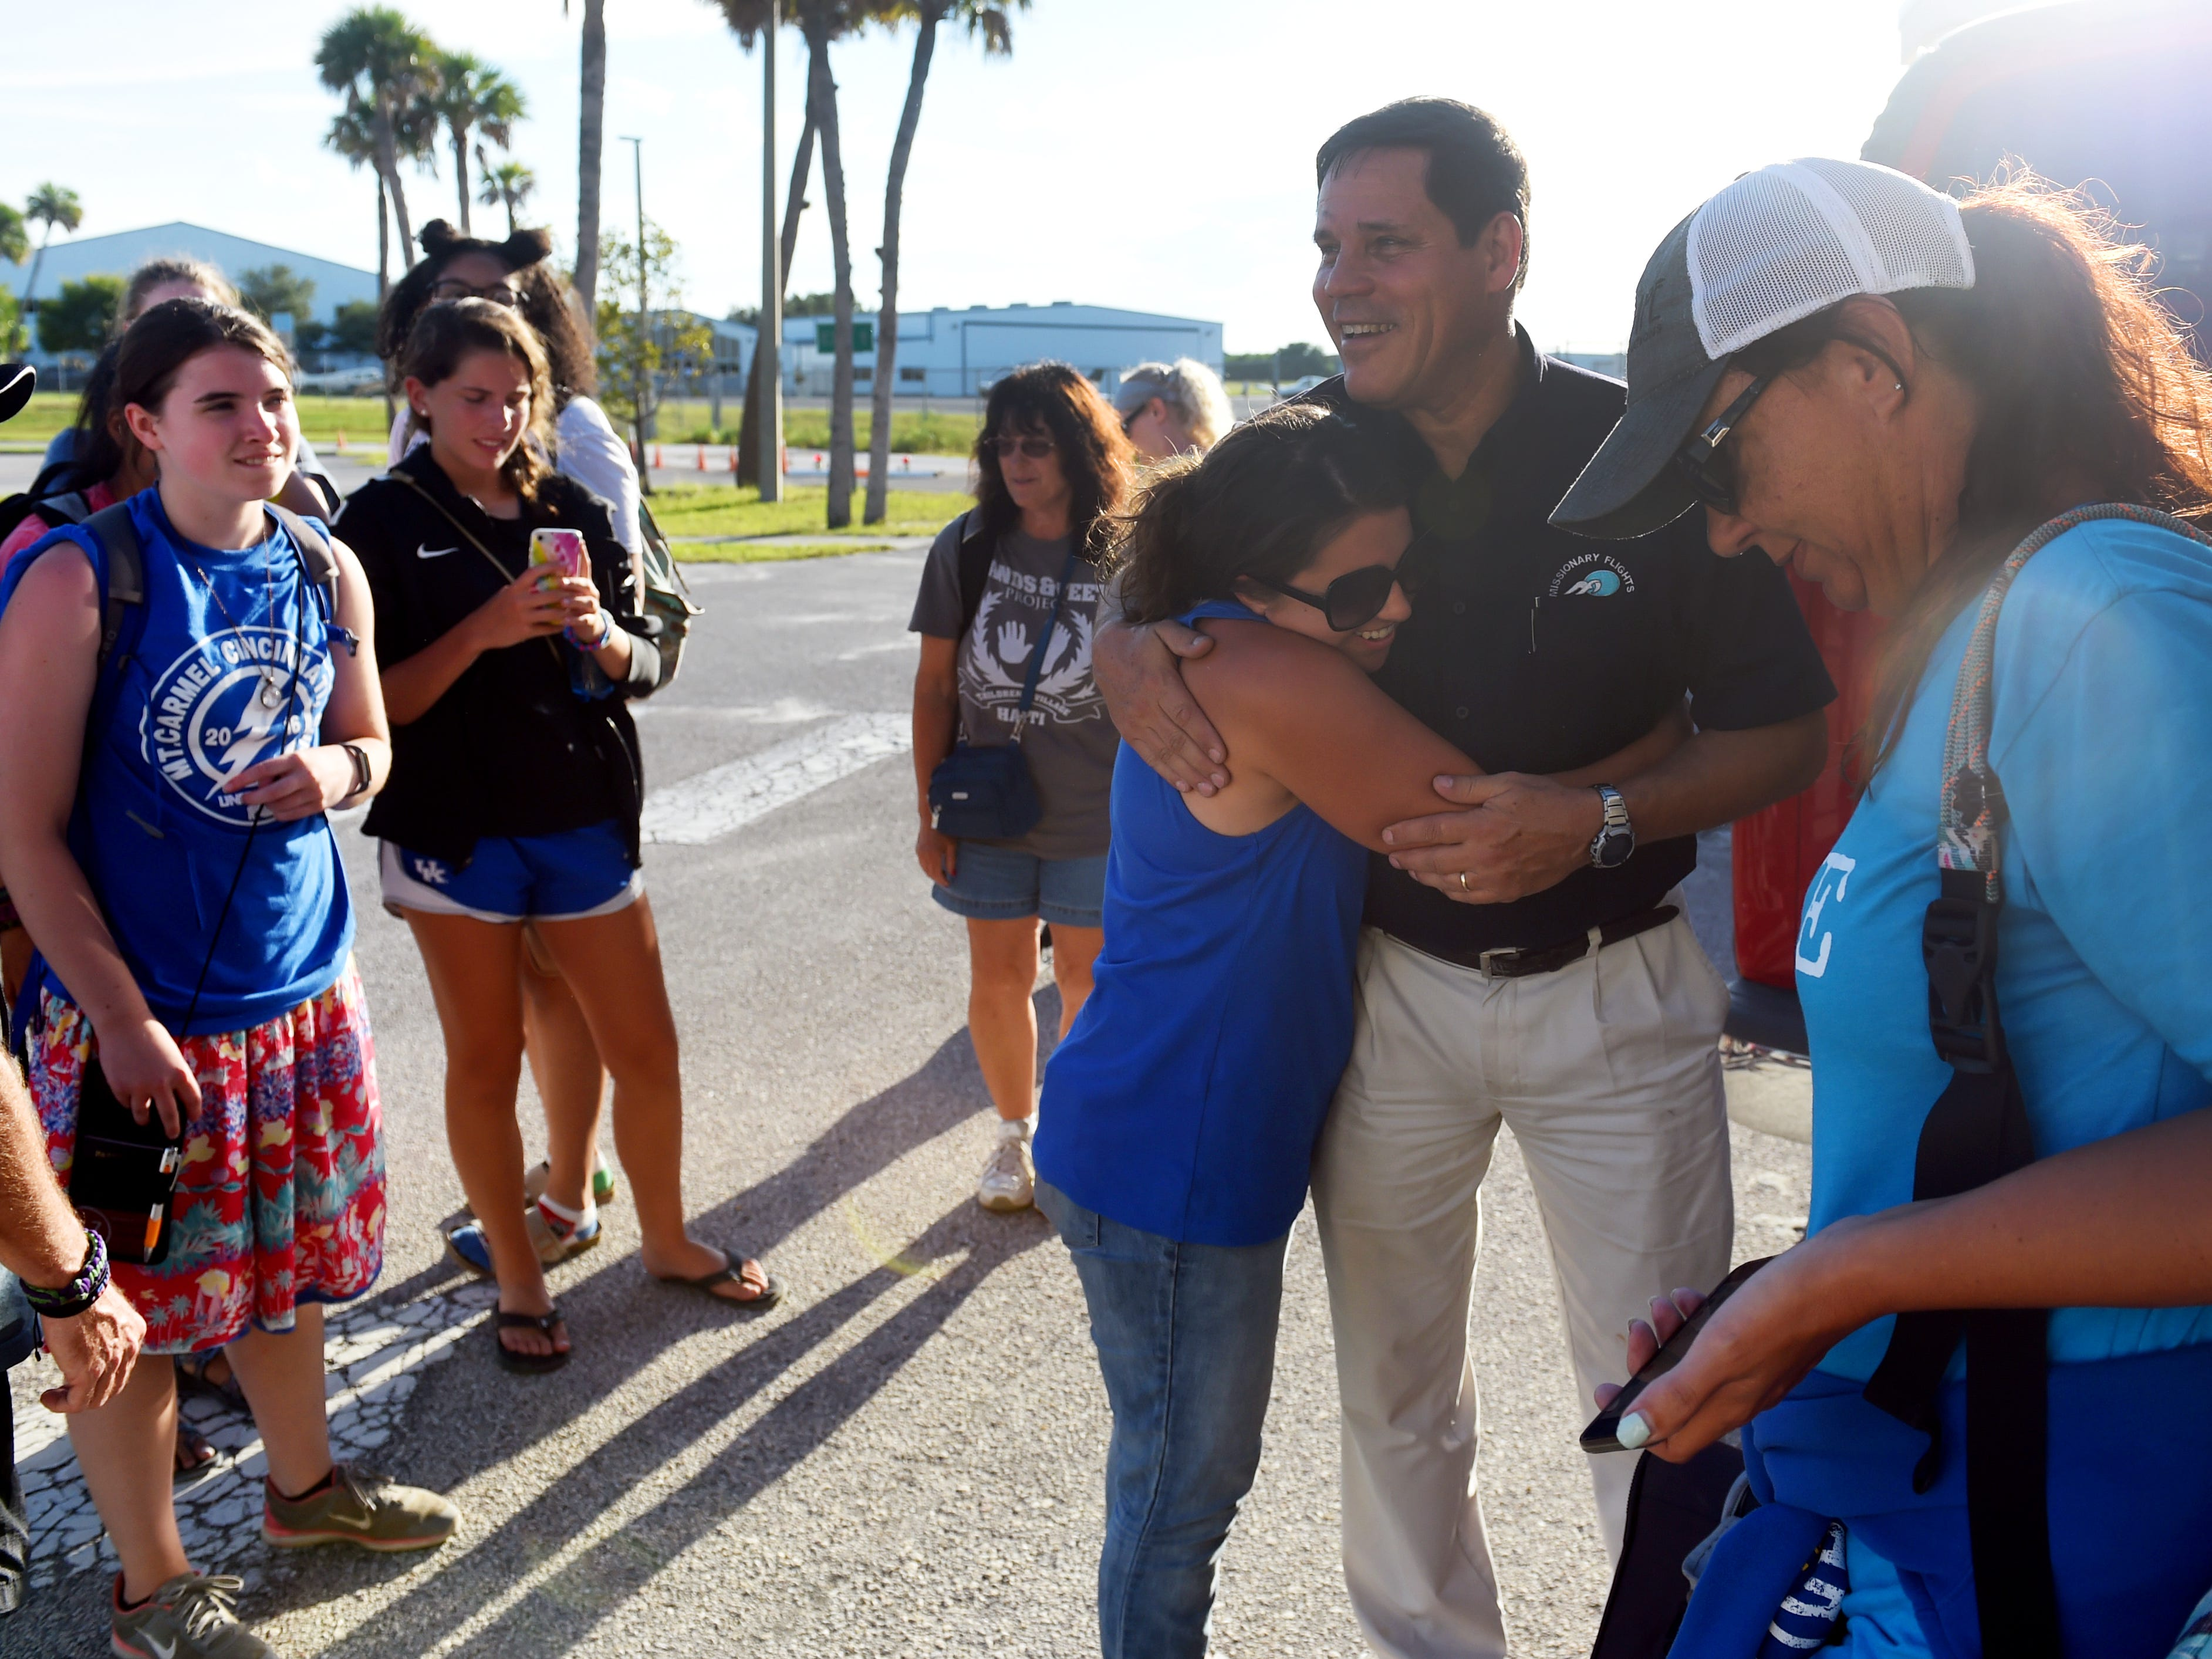 """Joe Karabensh, president of Missionary Flights International, receives a hug from Kinsley Smith, of Agape to the Nations, on Tuesday, July 10, 2018 after Smith and 22 fellow missionaries land safely at Treasure Coast International Airport and Business Park in Fort Pierce. Smith and her group were serving on a mission trip in Haiti when riots broke out ending their trip early. Due to roads blocks and civil unrest, the group was unable to reach the main airport to evacuate, when they were able to coordinate with Missionary Flights International to get out of the country. """"By God's beautiful, just how he aligns everything, we were able to use Missionary Flights International to get this team out today,"""" Smith said. """"It truly has been a relief and a breath of fresh air that we can step on U.S. soil today. But, we do miss our friends in Haiti and we are praying for them for peace because they are our family and friends there too."""""""